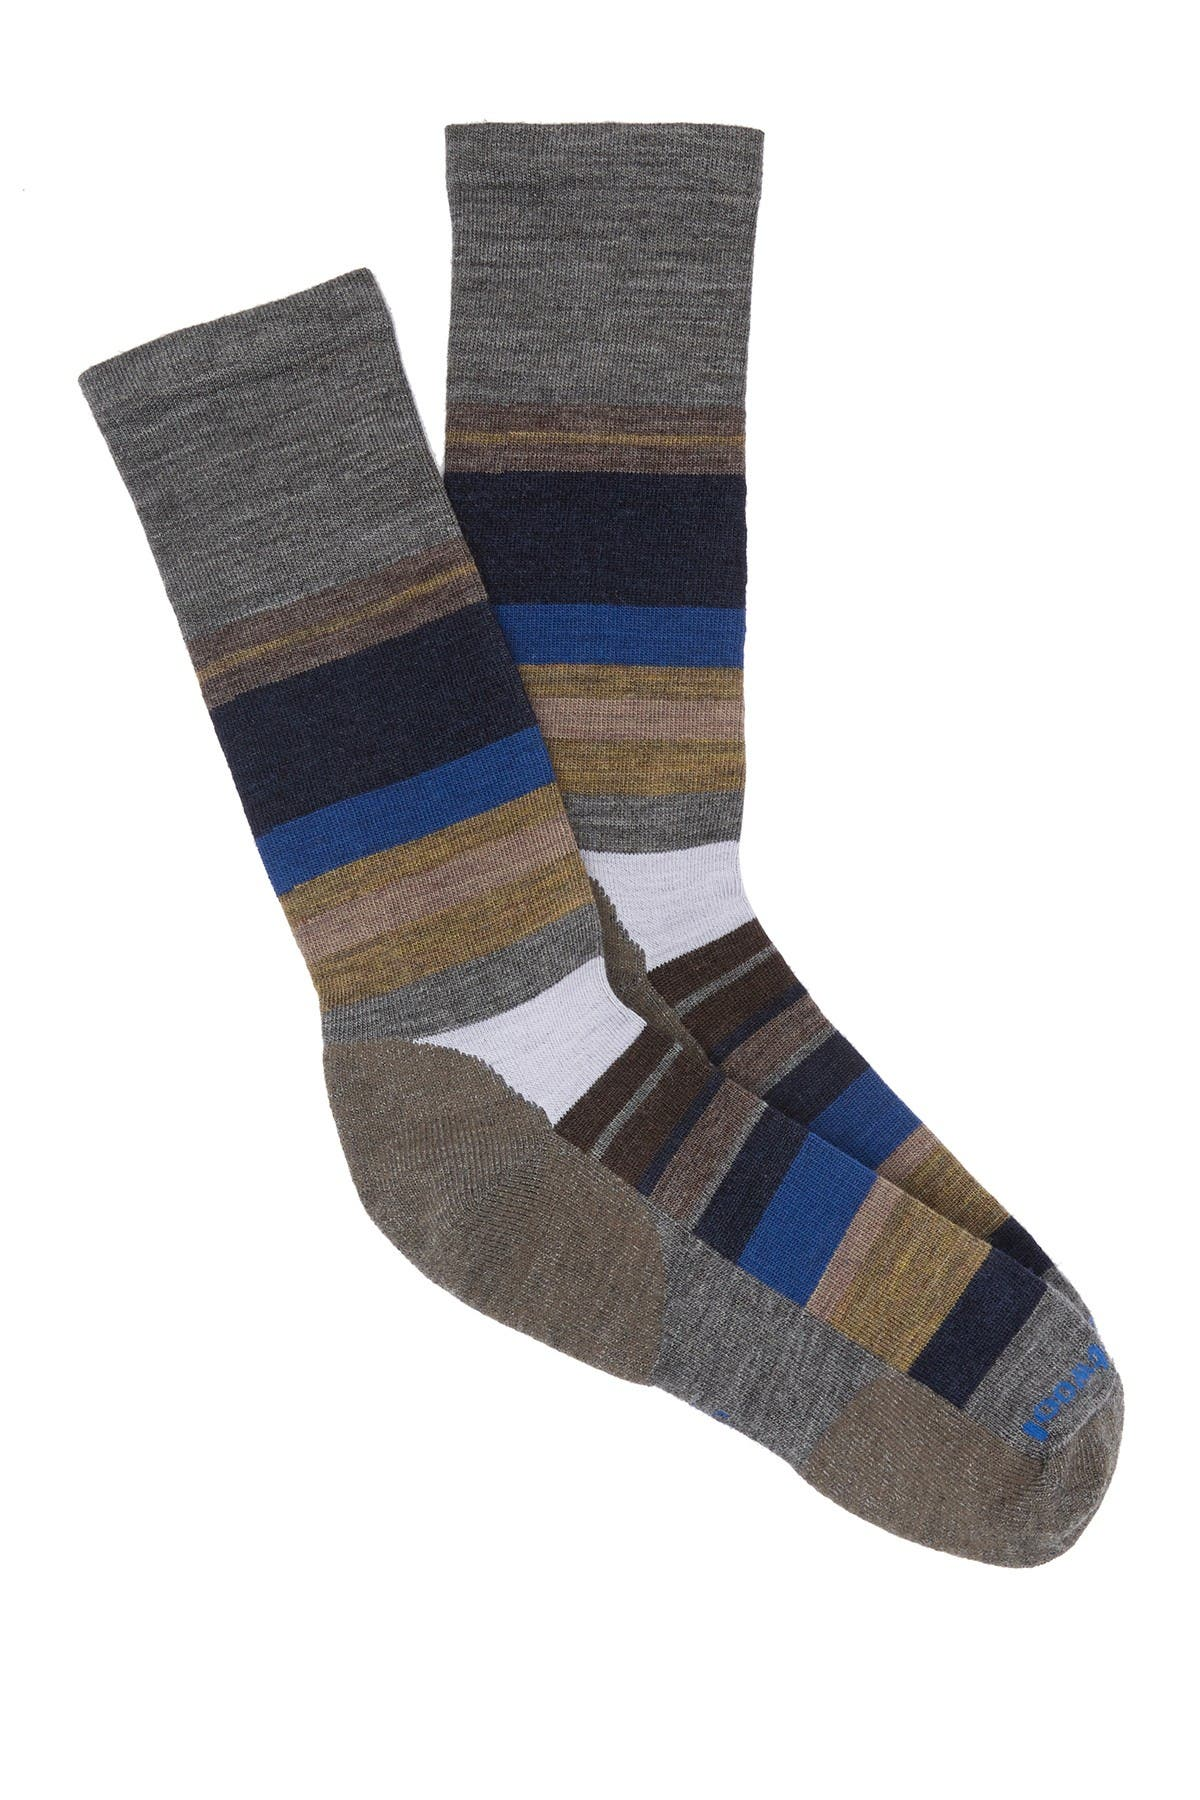 Image of SmartWool Saturnsphere Striped Crew Socks